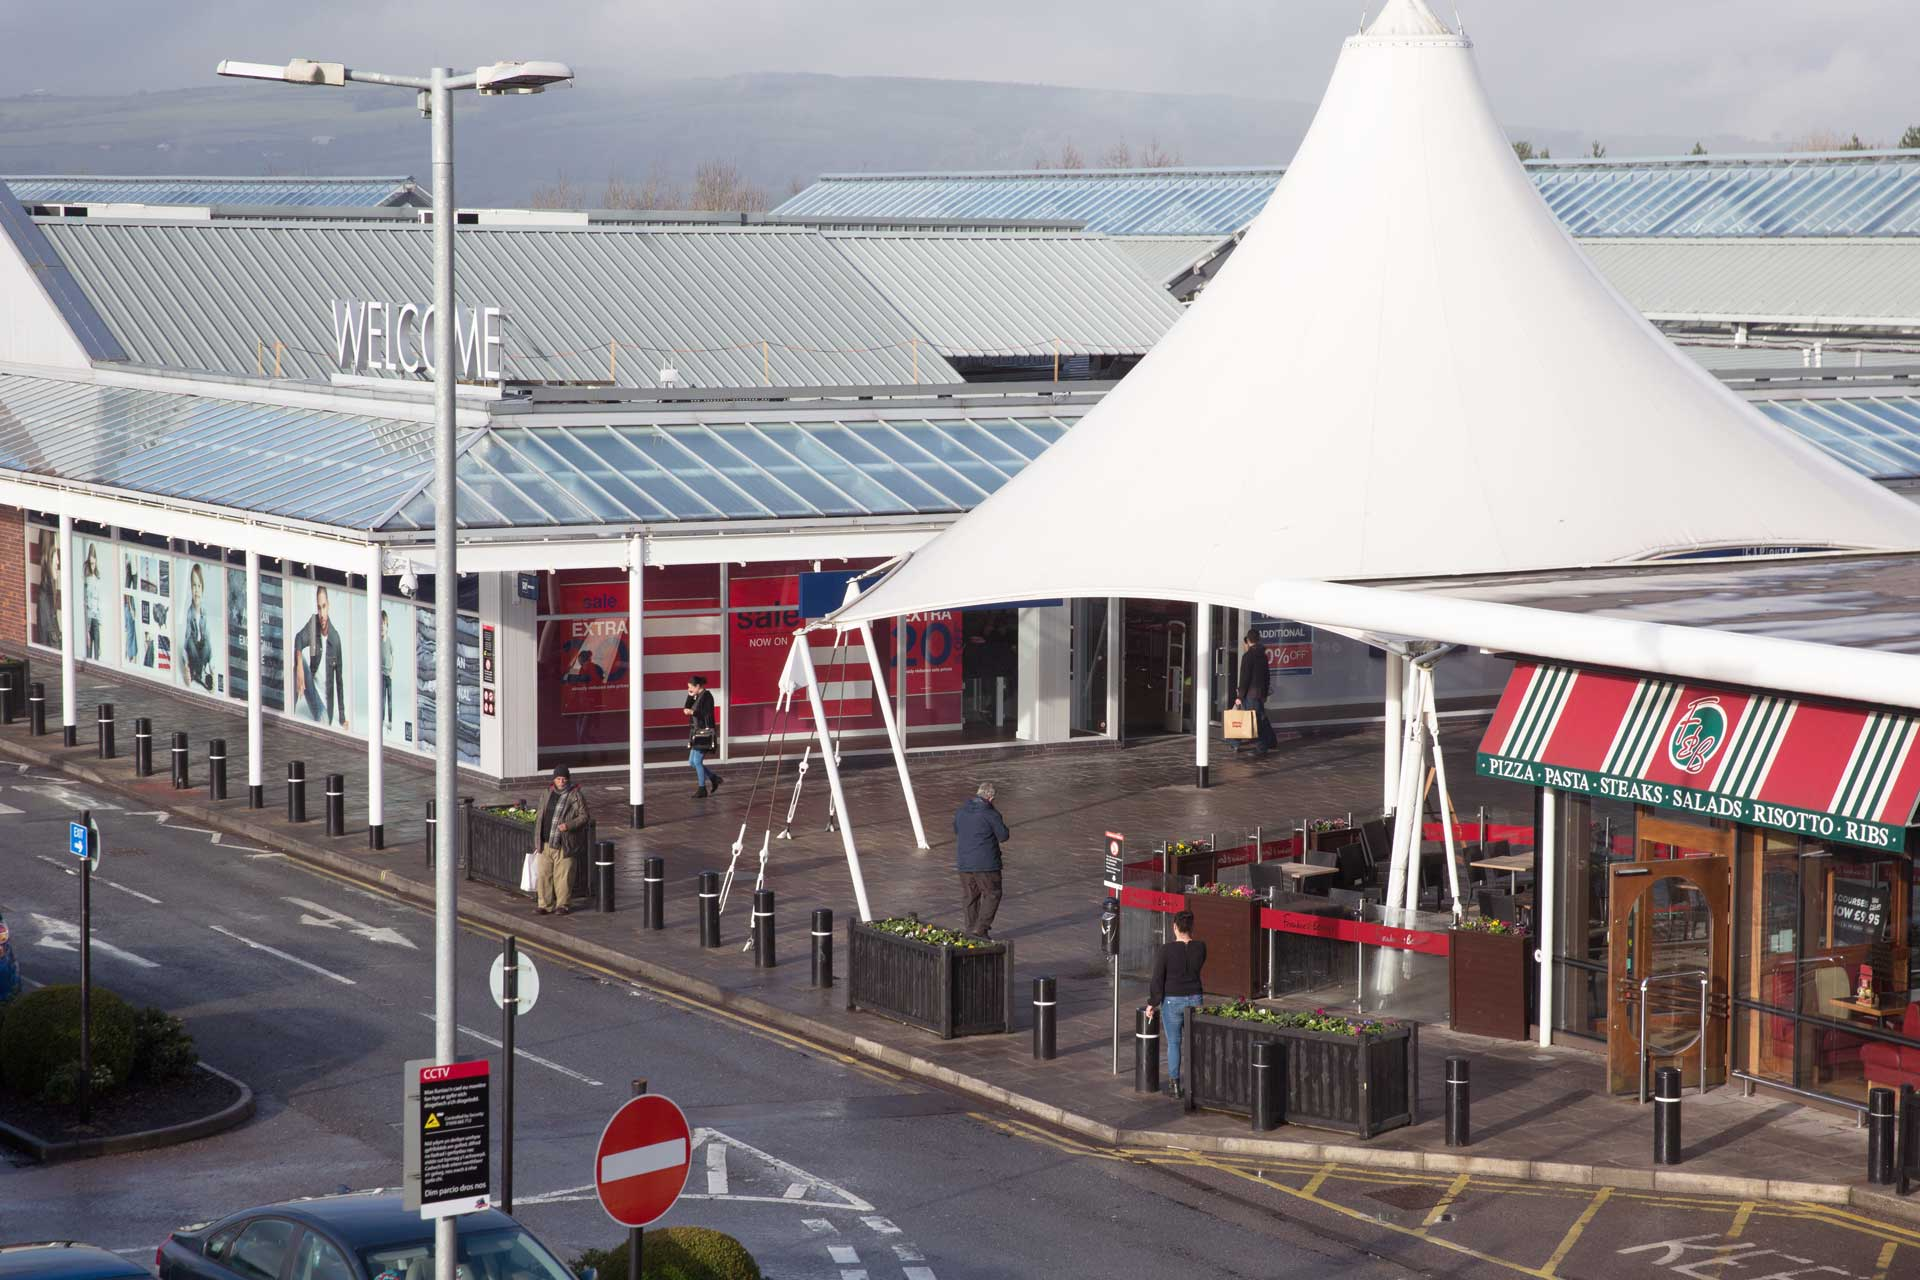 The restaurant entrance at Bridgend Designer Outlet